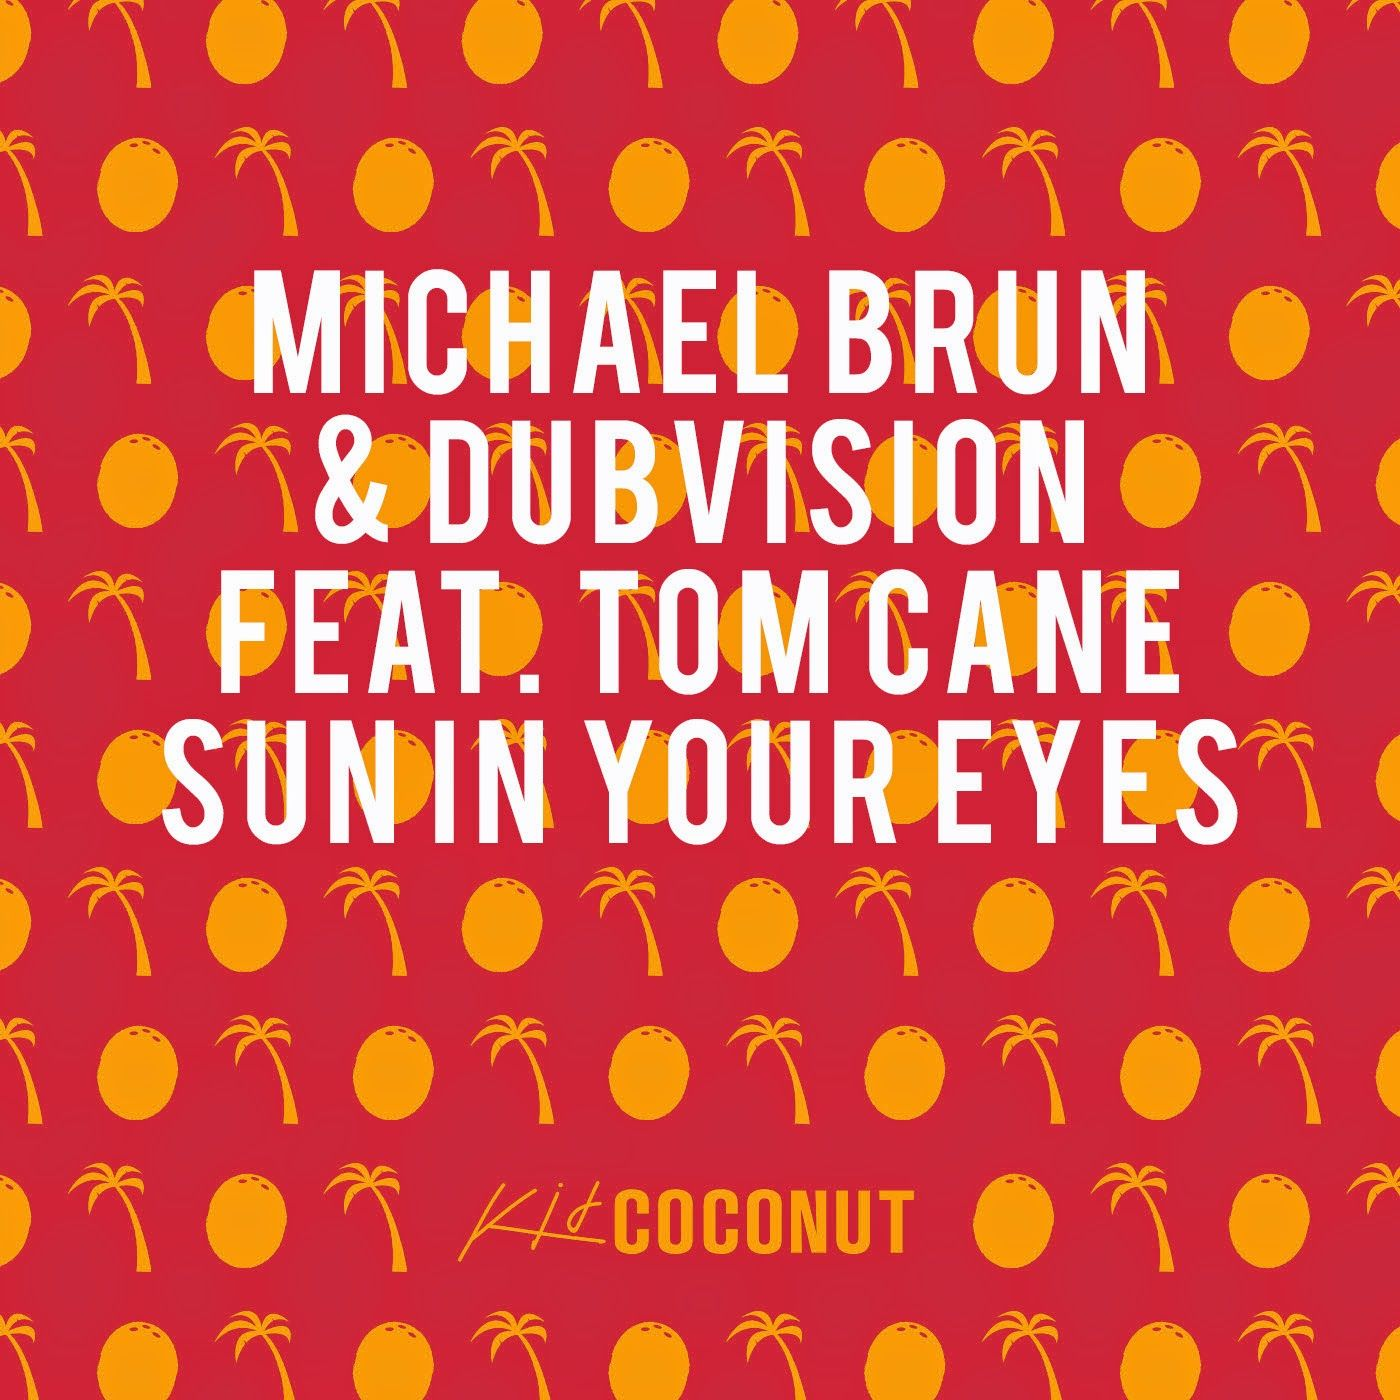 Michael Brun, DubVision, Tom Cane – Sun In Your Eyes (single cover art)